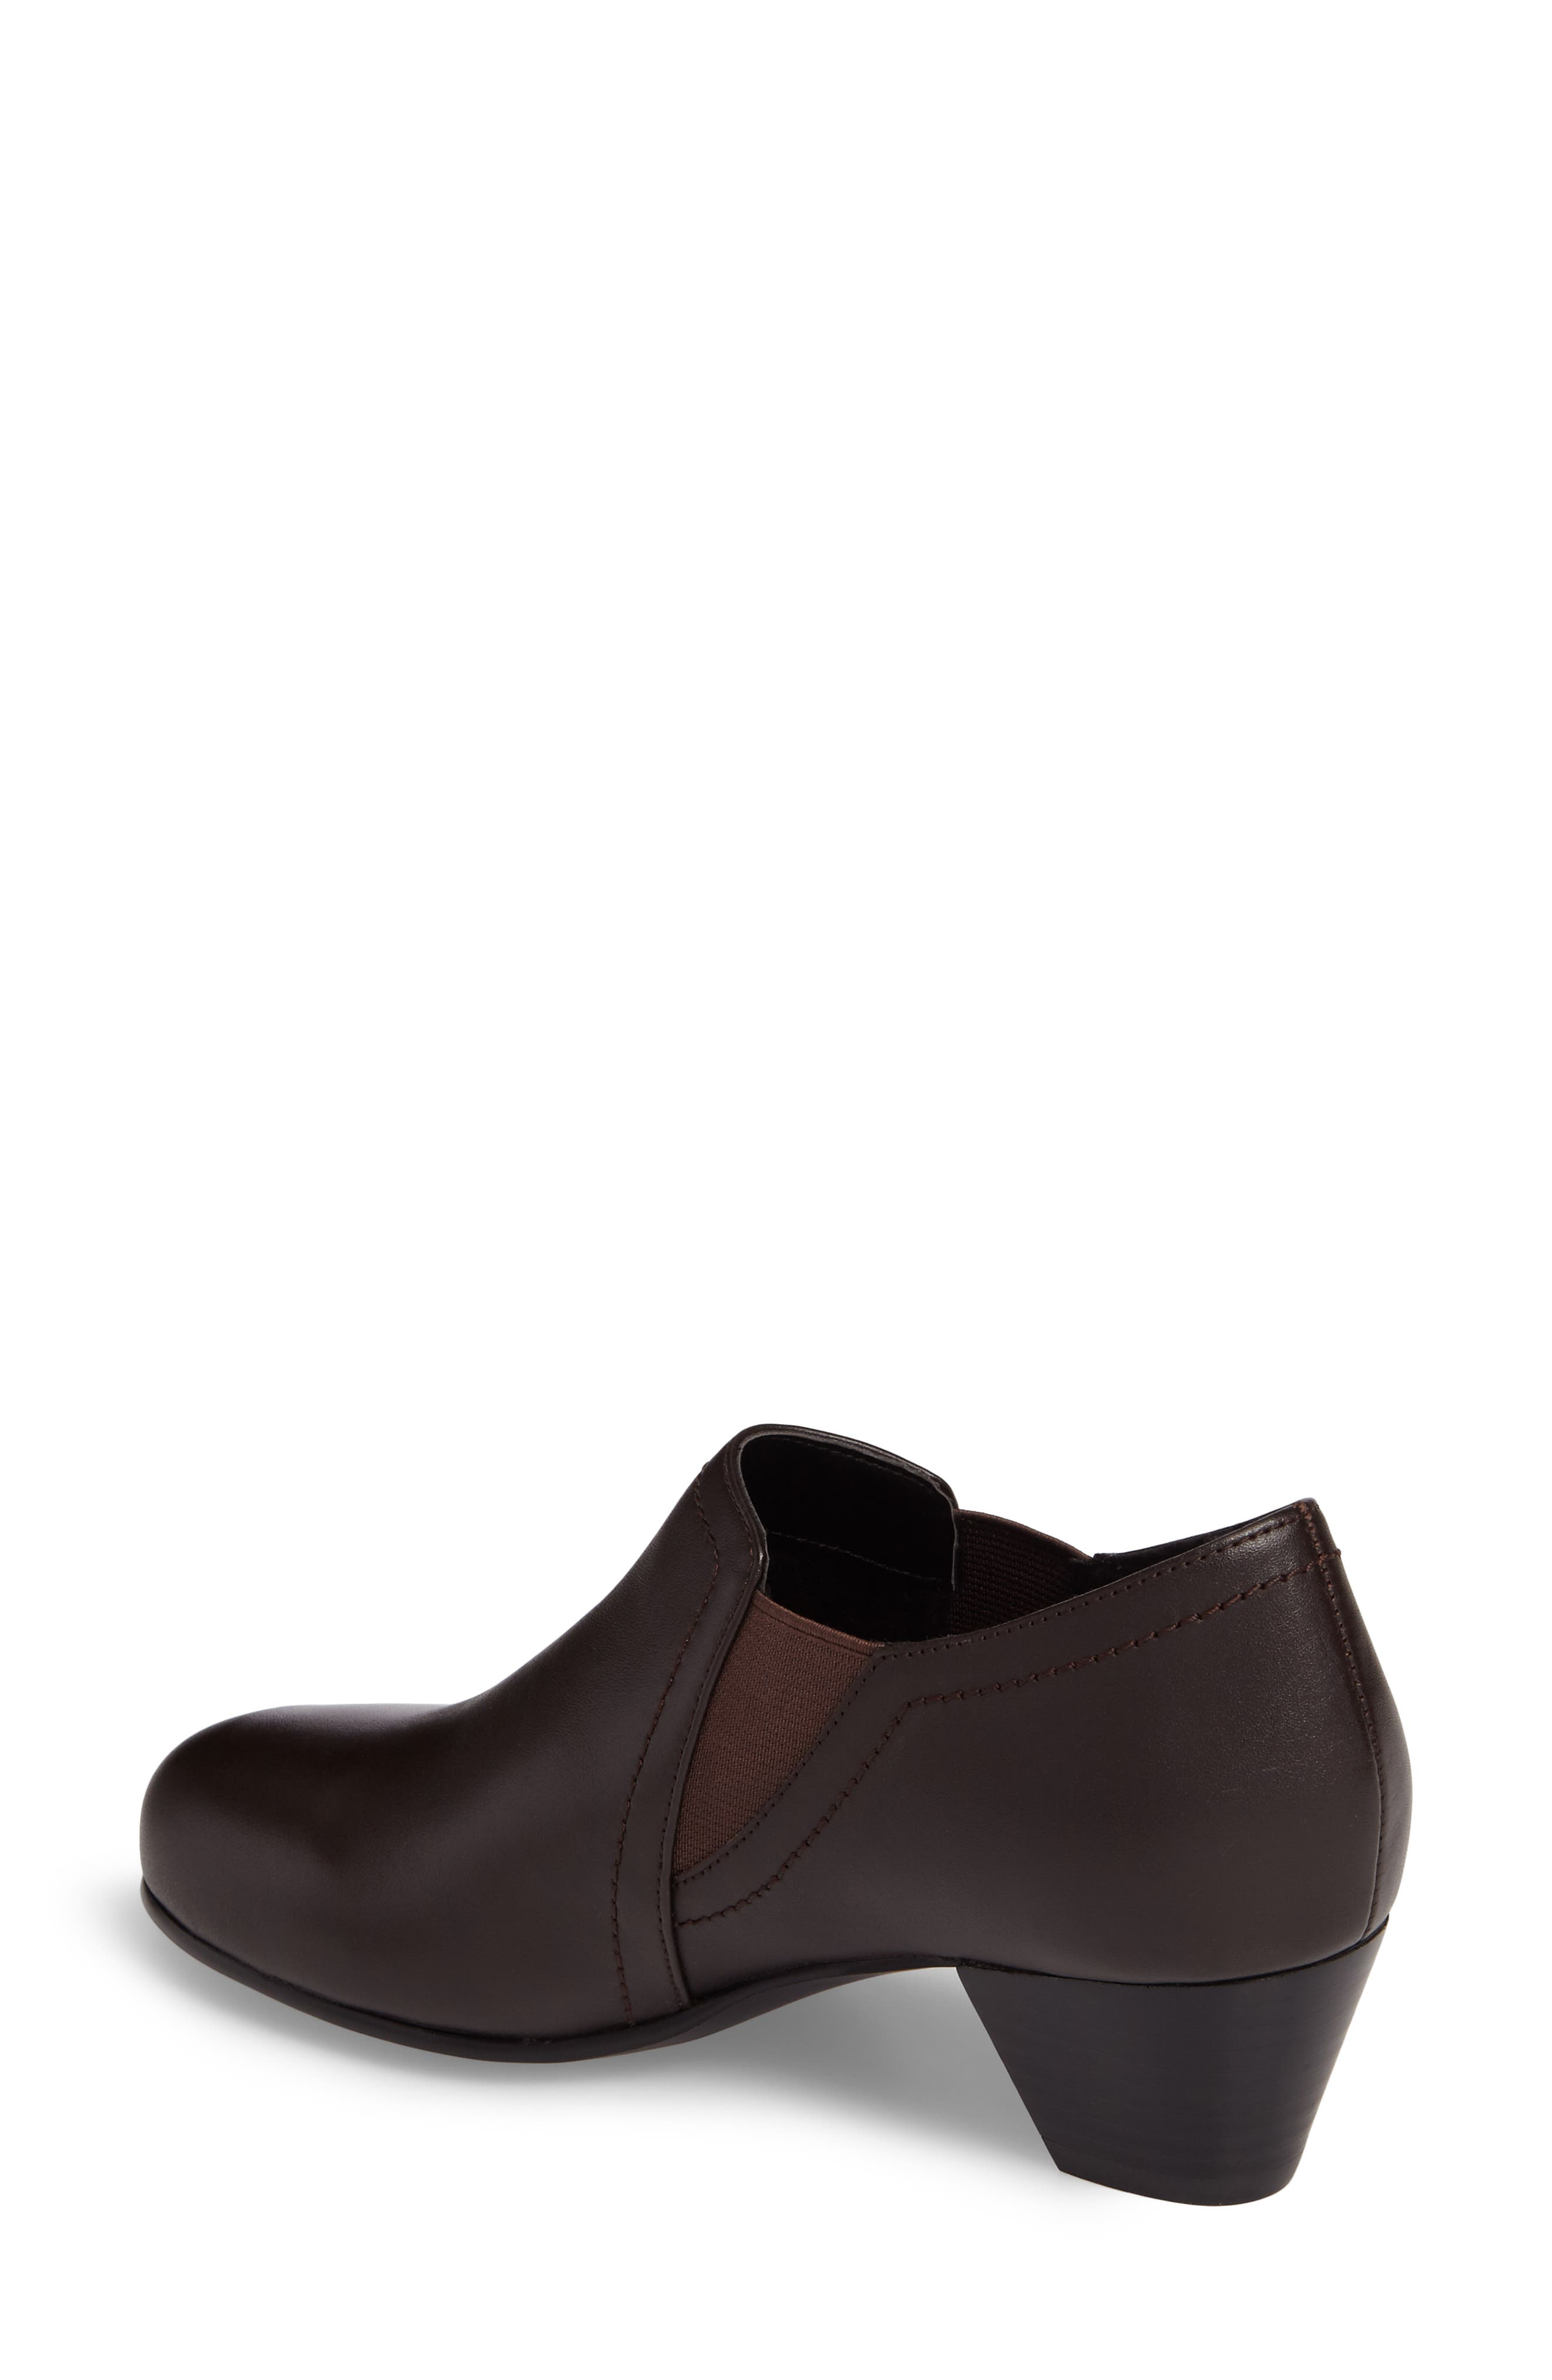 Maple Bootie,                             Alternate thumbnail 2, color,                             BROWN LEATHER